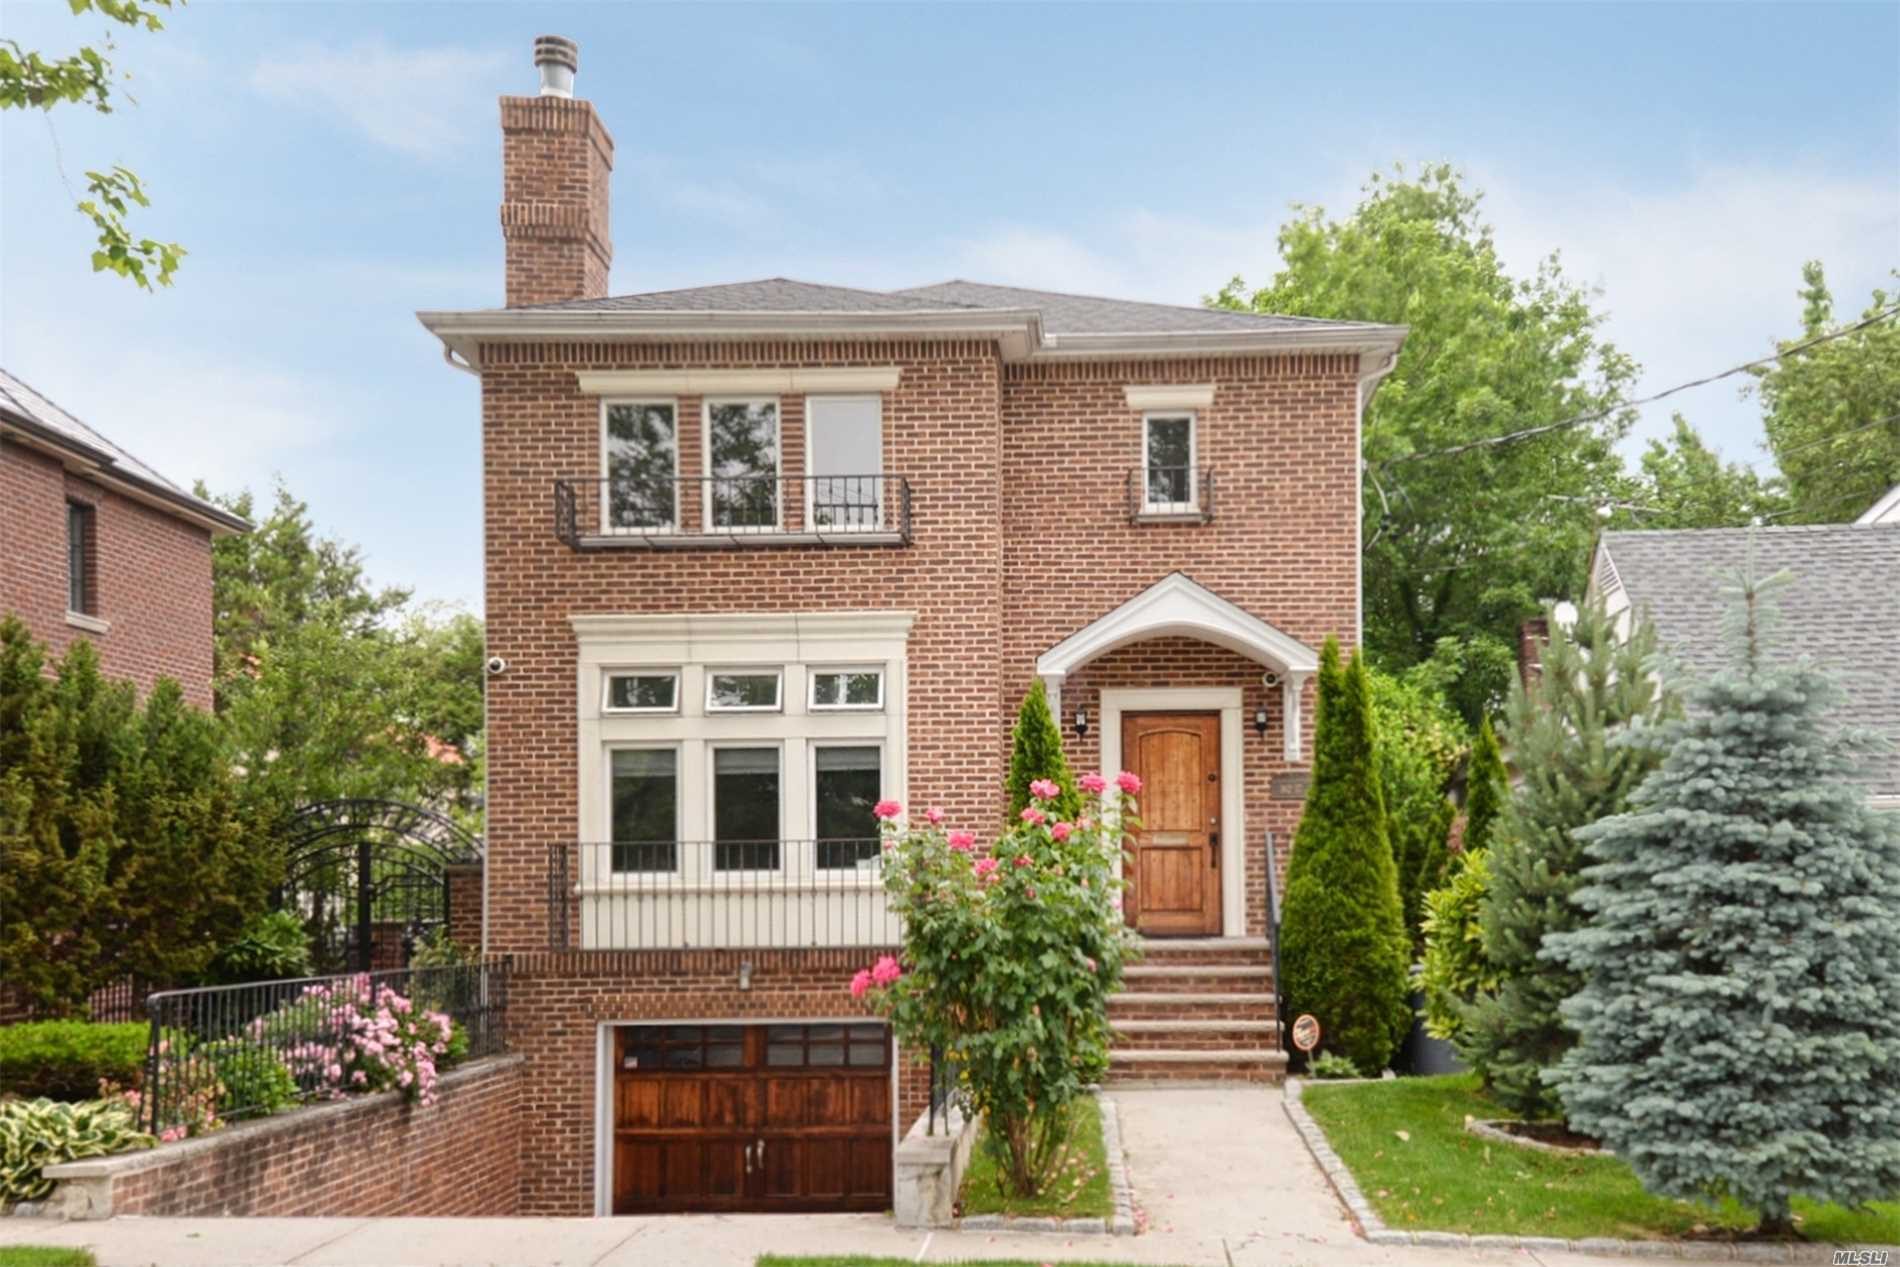 Beautiful condition home in the exclusive Robinswood area of Beechhurst. House in aaa condition with heated driveway.